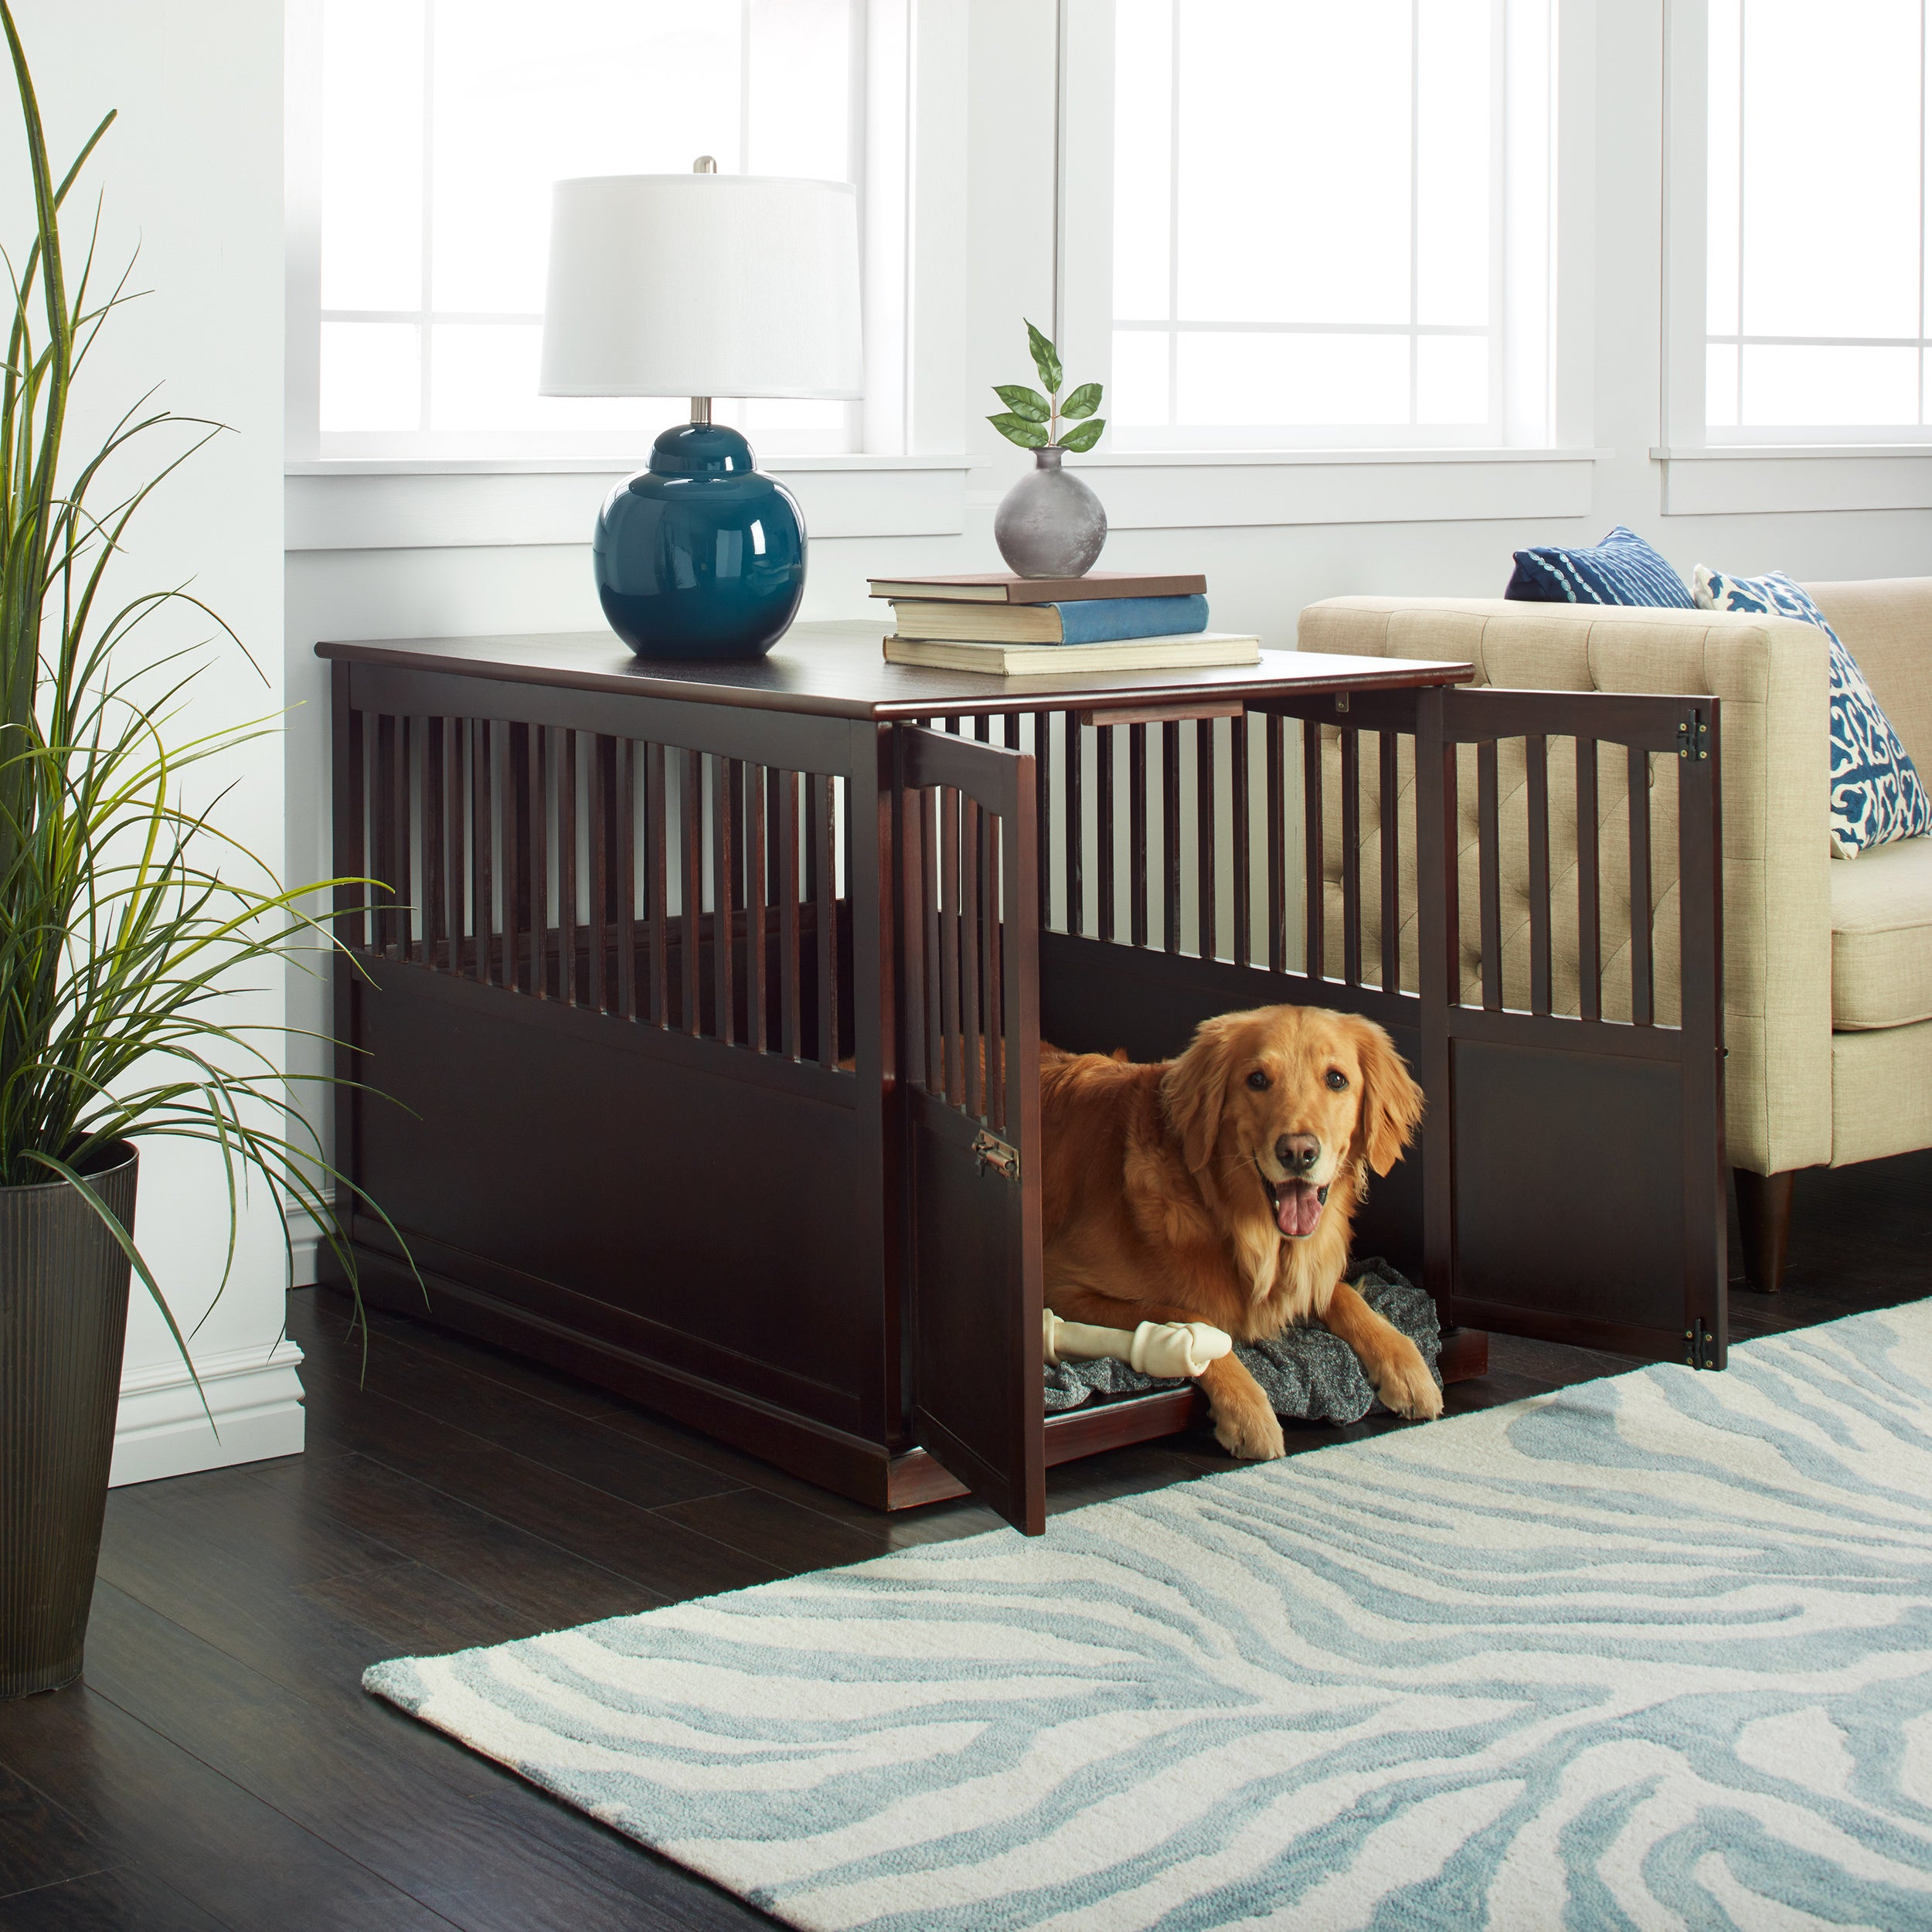 wooden extra large espresso pet crate end table dog details about laura ashley canopy beds diy pallet plans turquoise coffee small brown rattan lamps wood top for distressed with